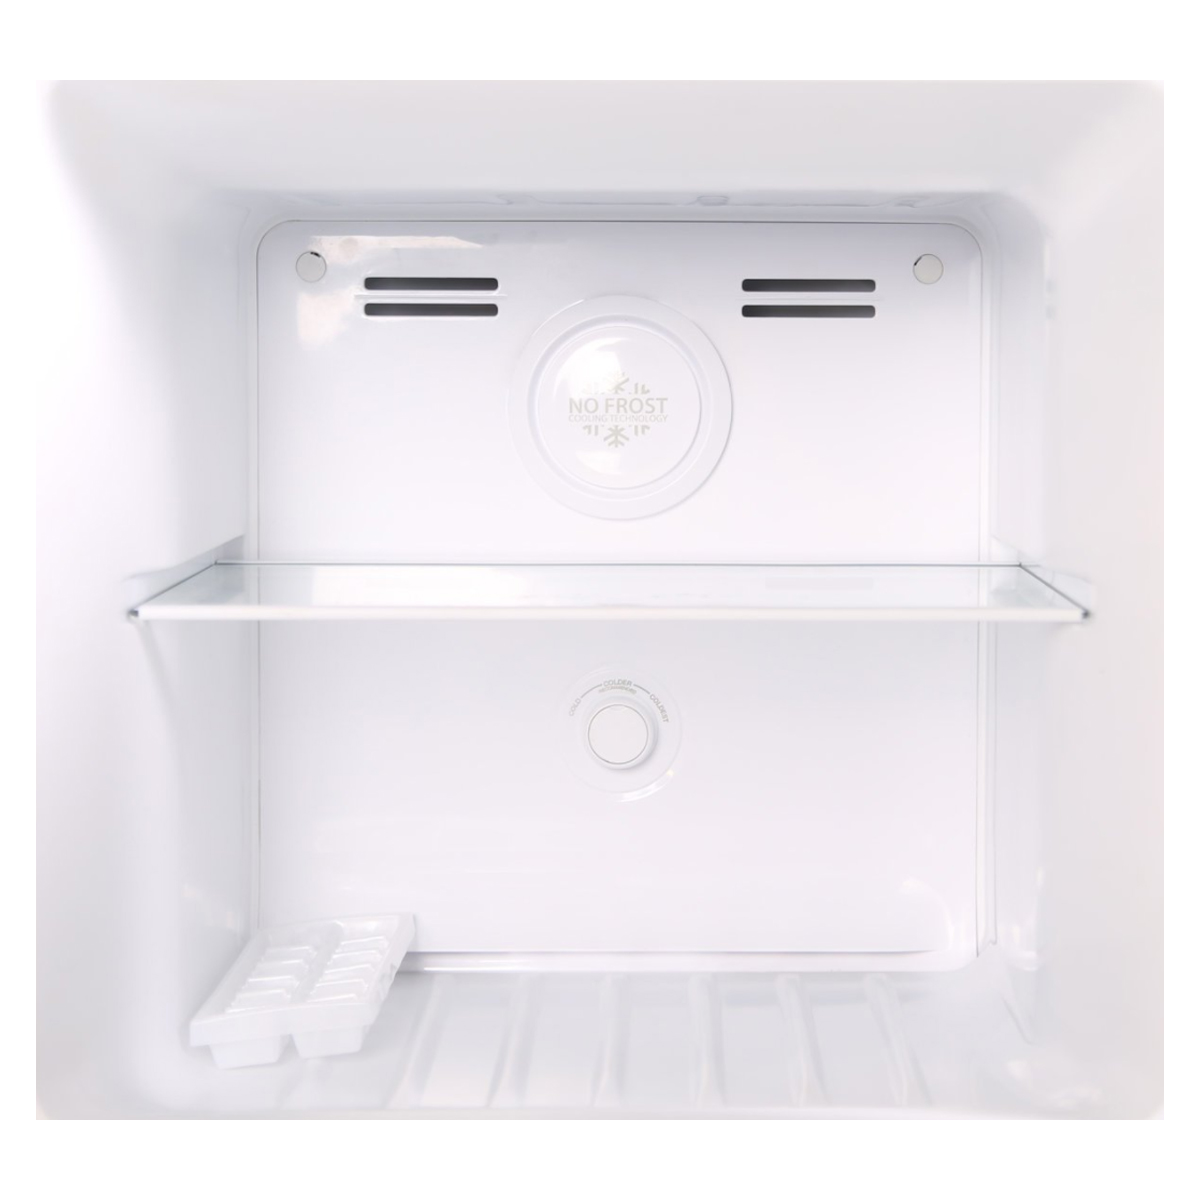 Lemair LTM221W 221Litres Top Mount Fridge 104747